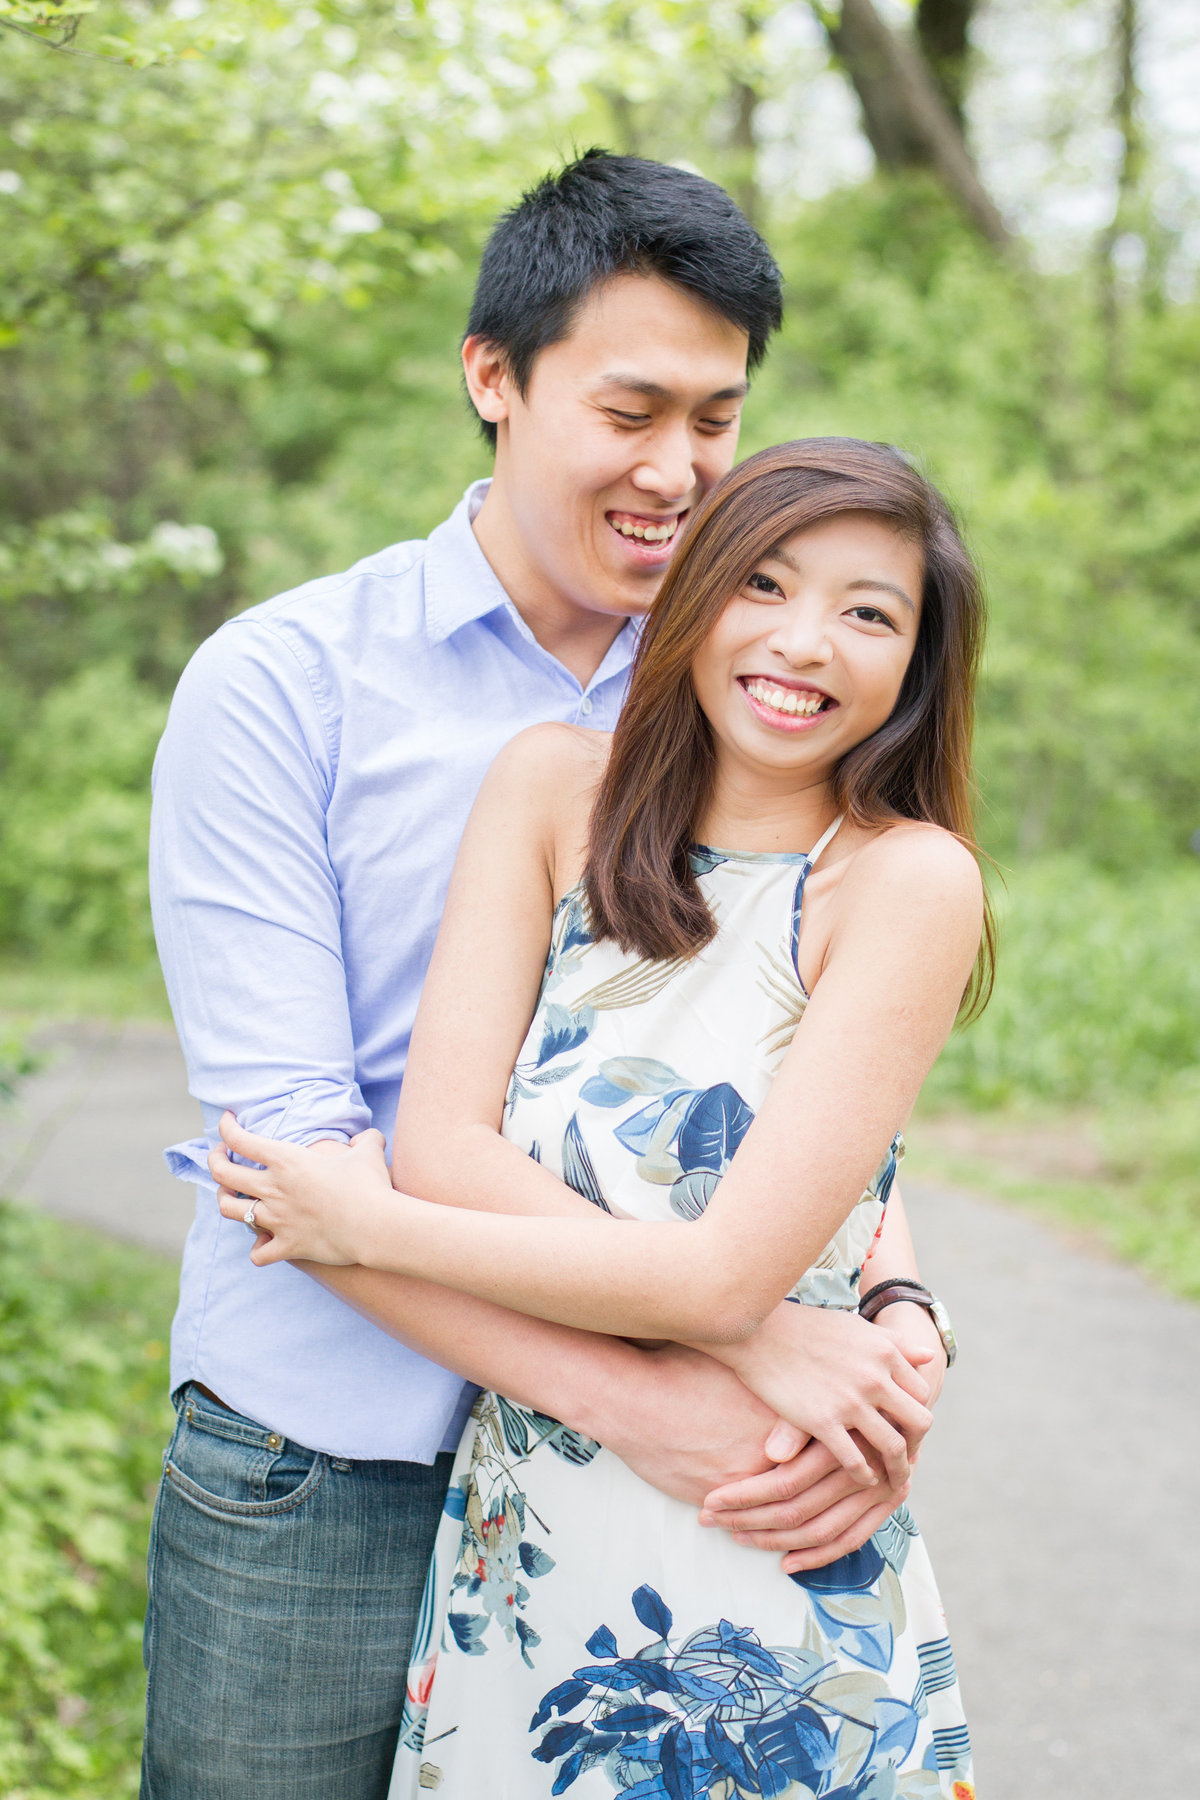 candid-happy-spring-engagement-wedding-photo-photography-chicago